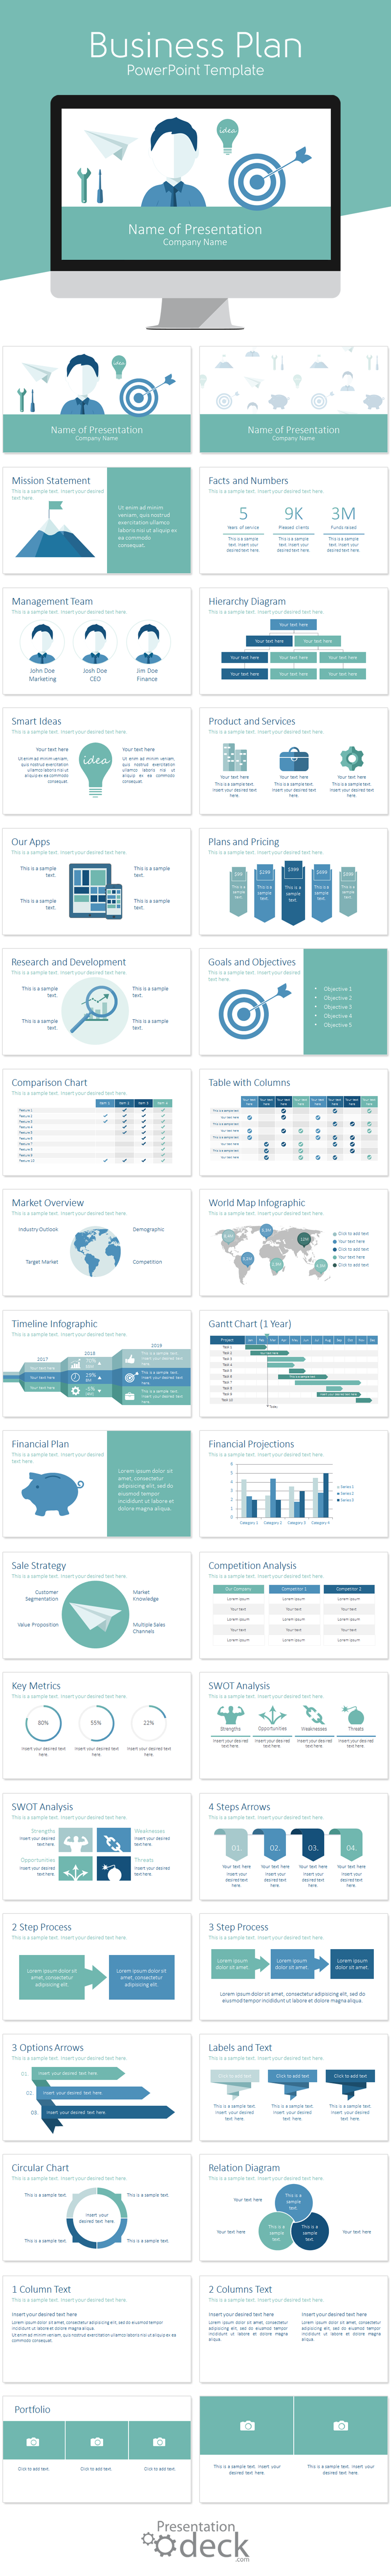 Business plan powerpoint template powerpoint templates pinterest business plan powerpoint template in flat design style with 36 pre designed slides this deck includes slides on the following topics mission friedricerecipe Images